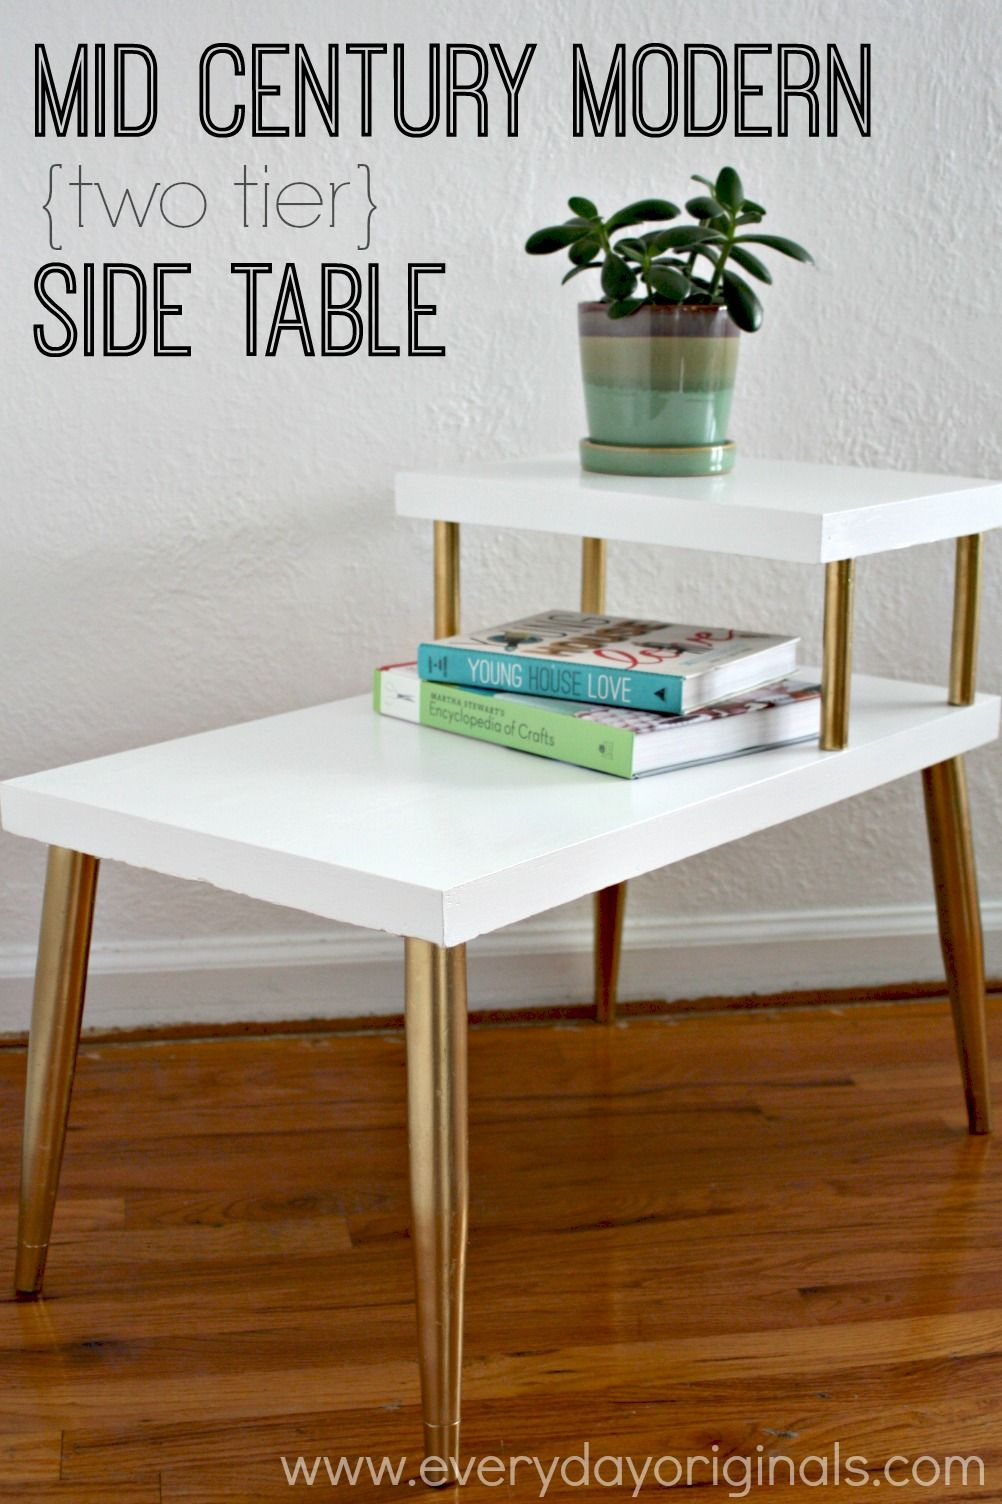 Mid Modern Two Tier Table Makeover Side Table Makeover Mid Century Modern Furniture Mid Century Modern Side Table